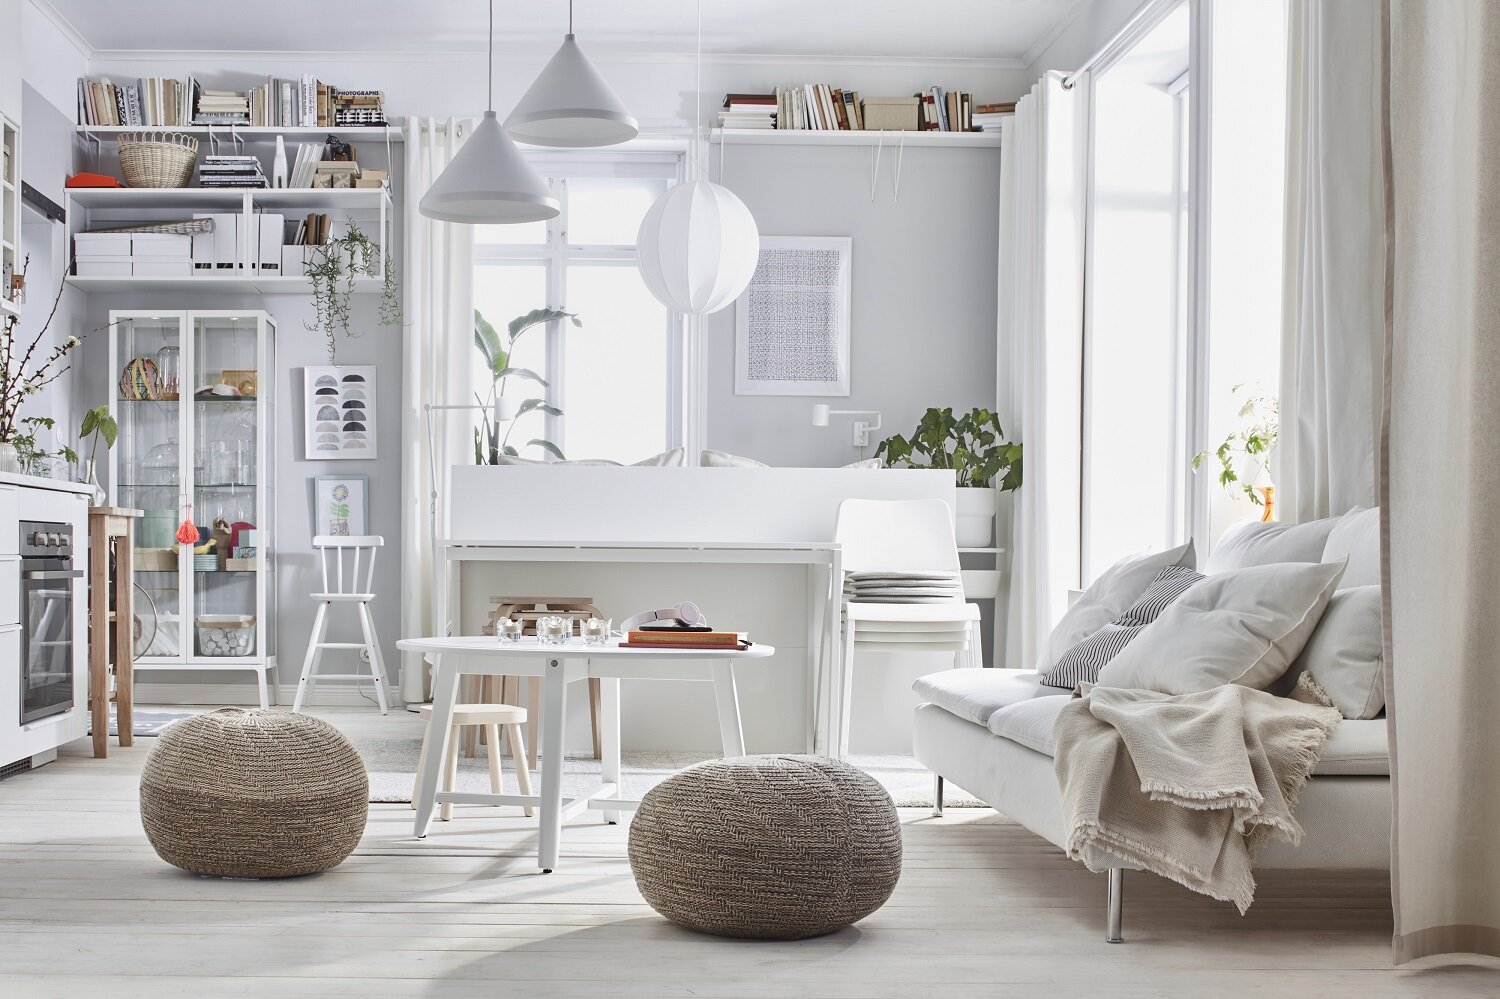 Living Room Decor Ideas 2021 Uk - Knowing And Sharing